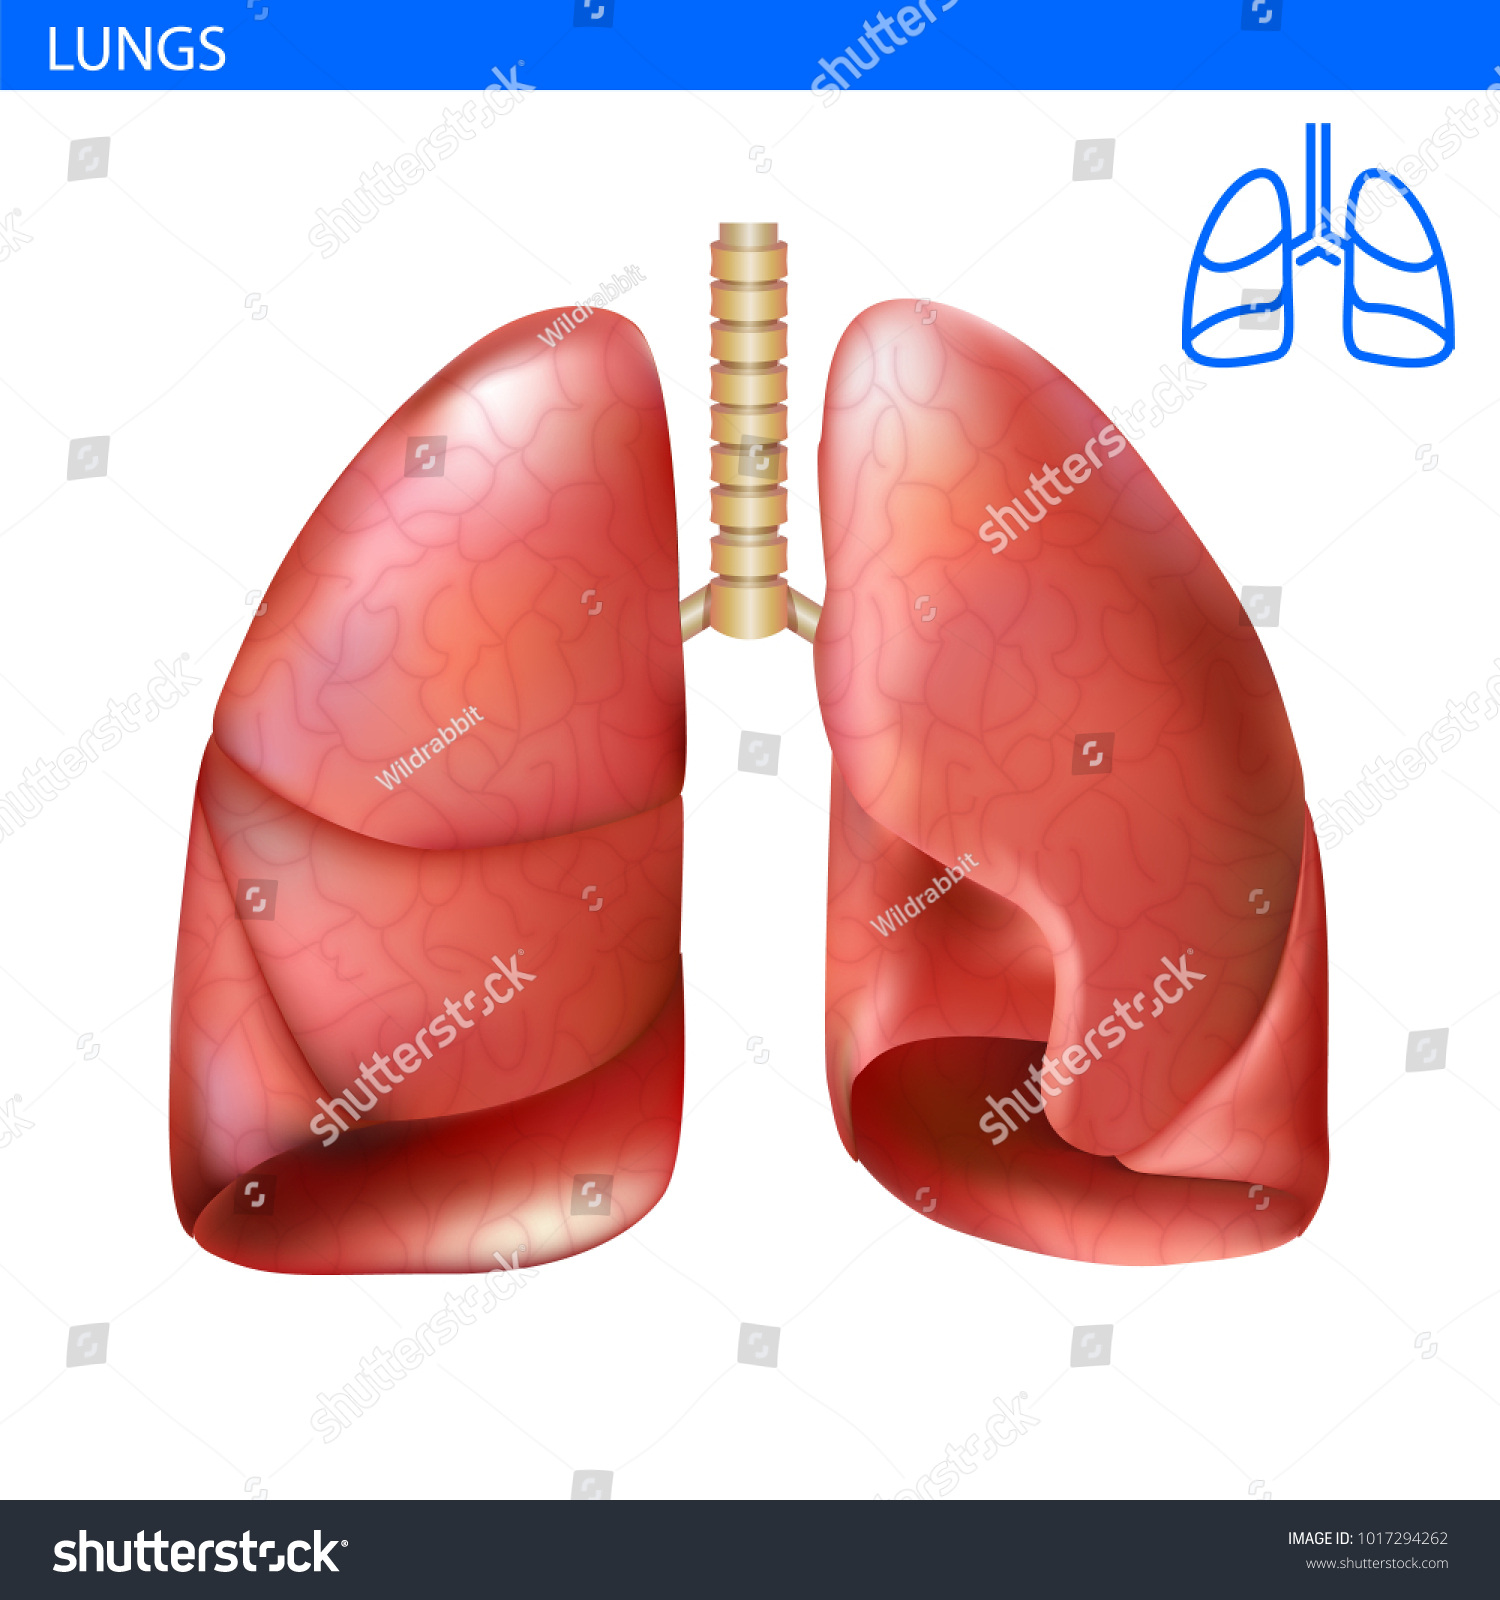 Human Lungs Anatomy Realistic Illustration Front Stock Vector ...